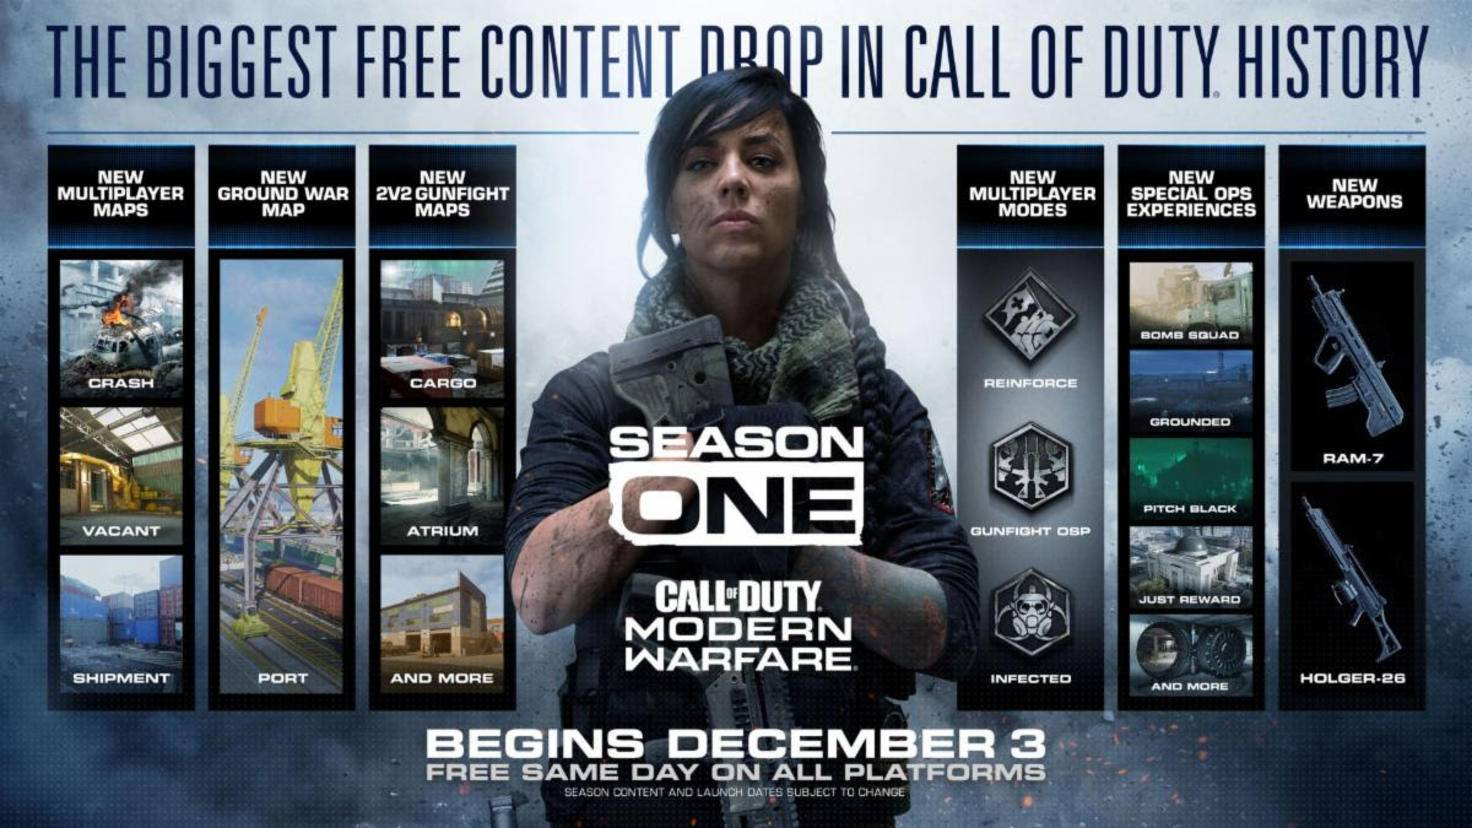 call-of-duty-modern-warfare-season-1-content